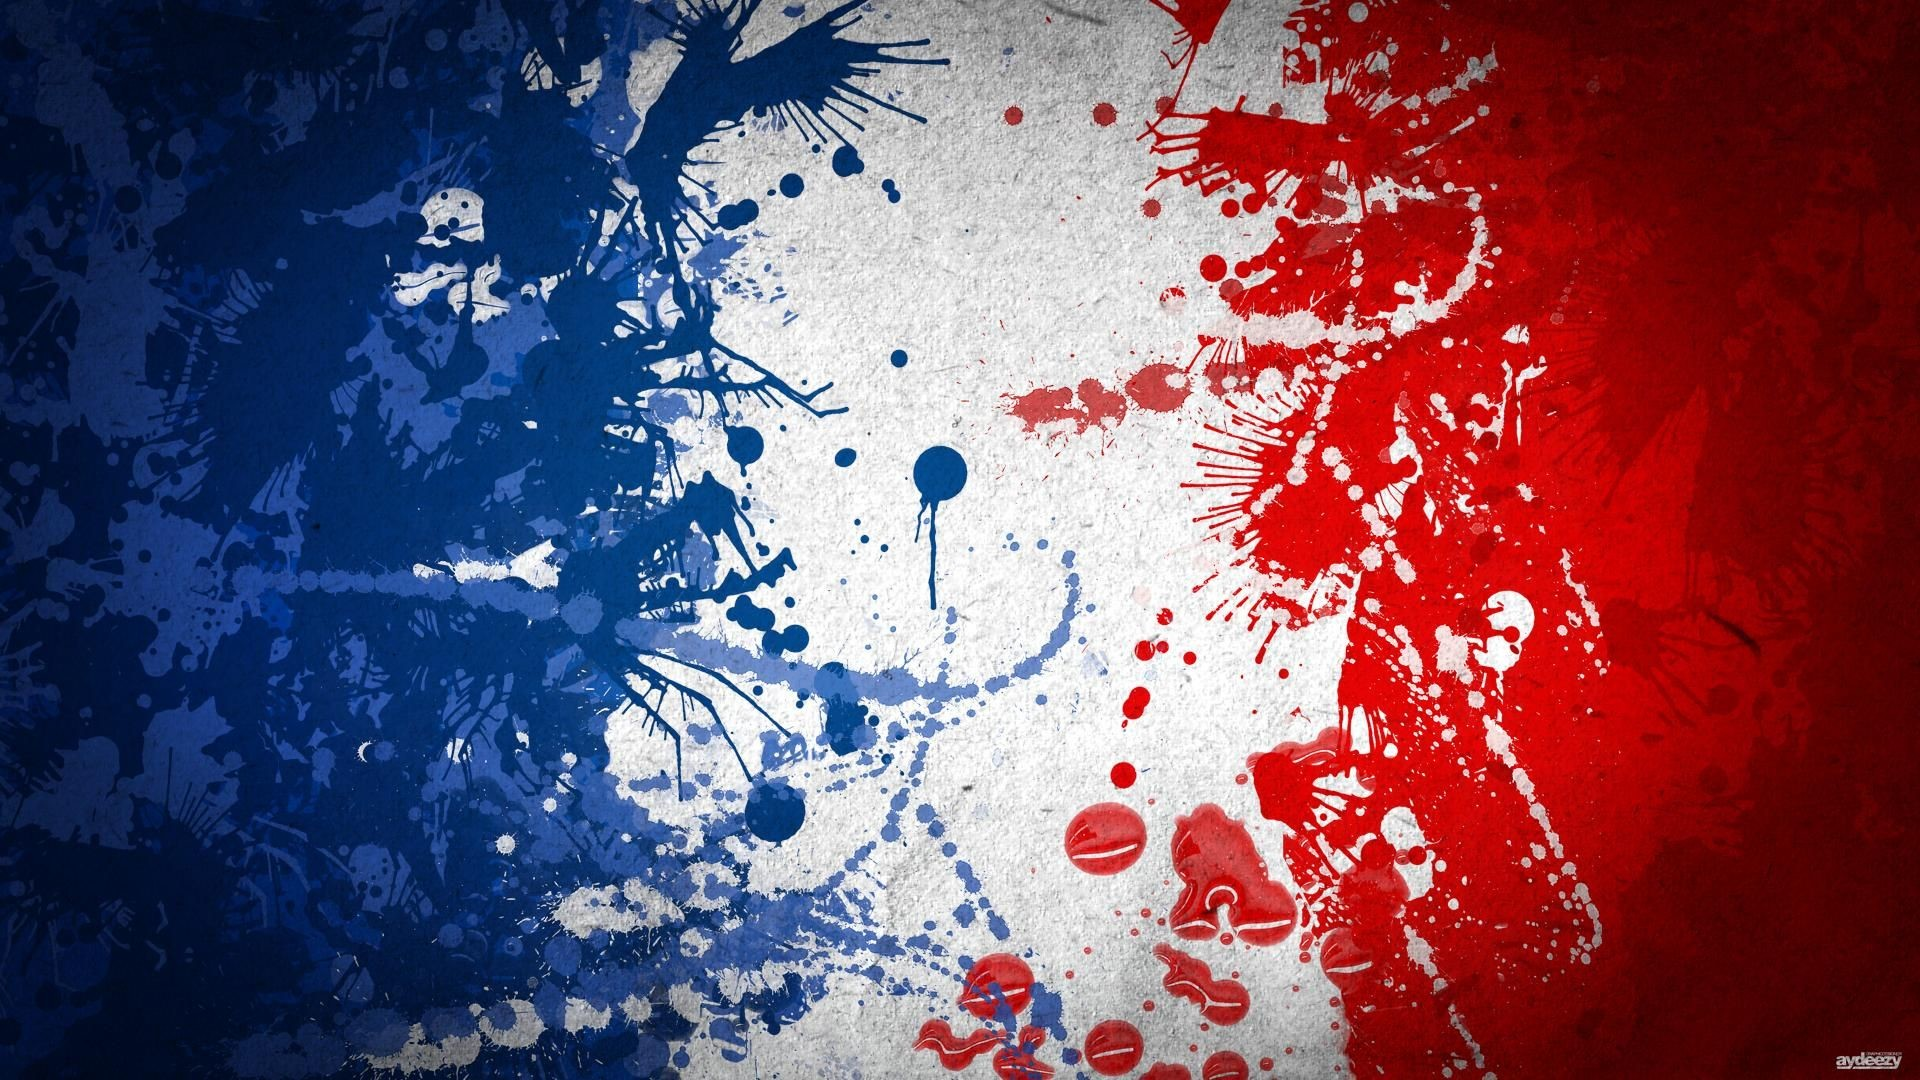 Res: 1920x1080, Paris, France Wallpaper HD Android Apps on Google Play 1920×1200 France  Wallpaper (